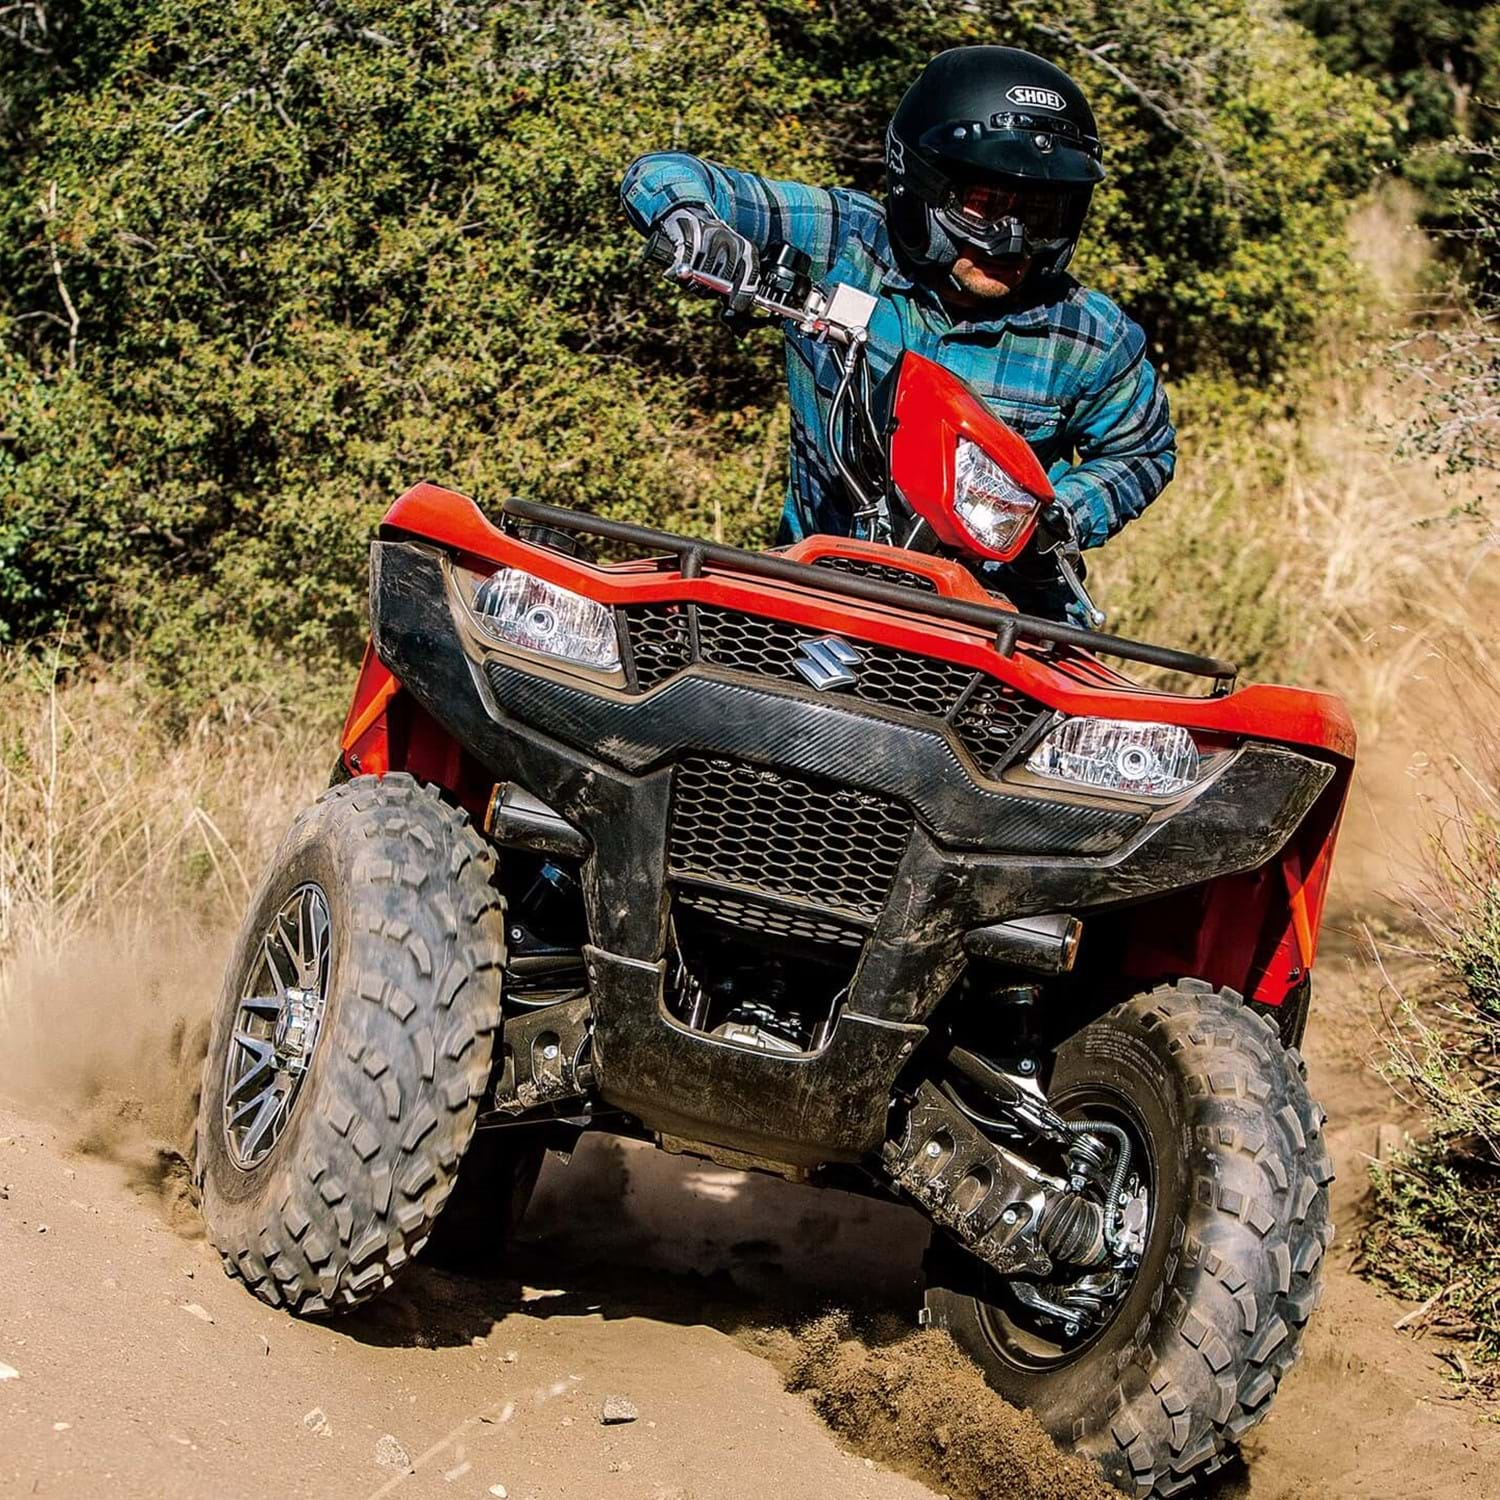 KingQuad 750 action image